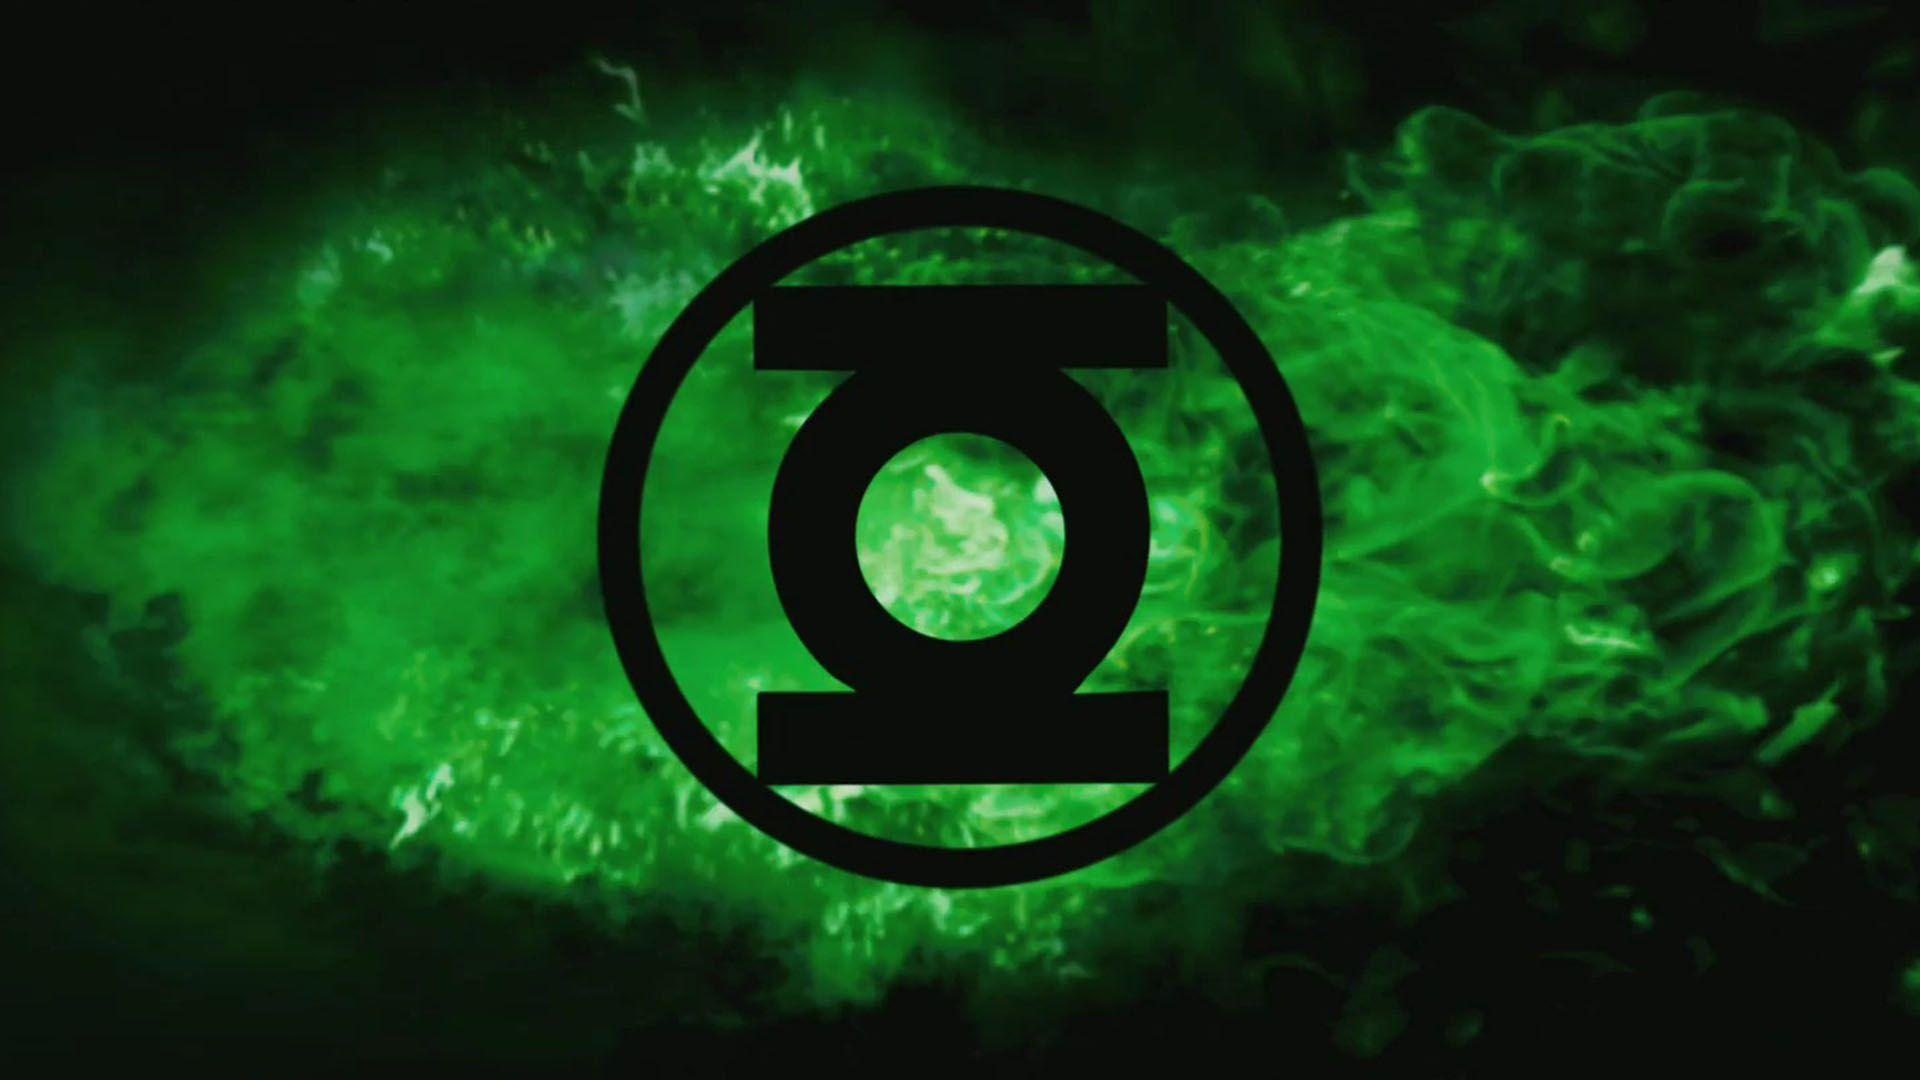 Wallpapers For > Green Lantern Oath Wallpapers Hd